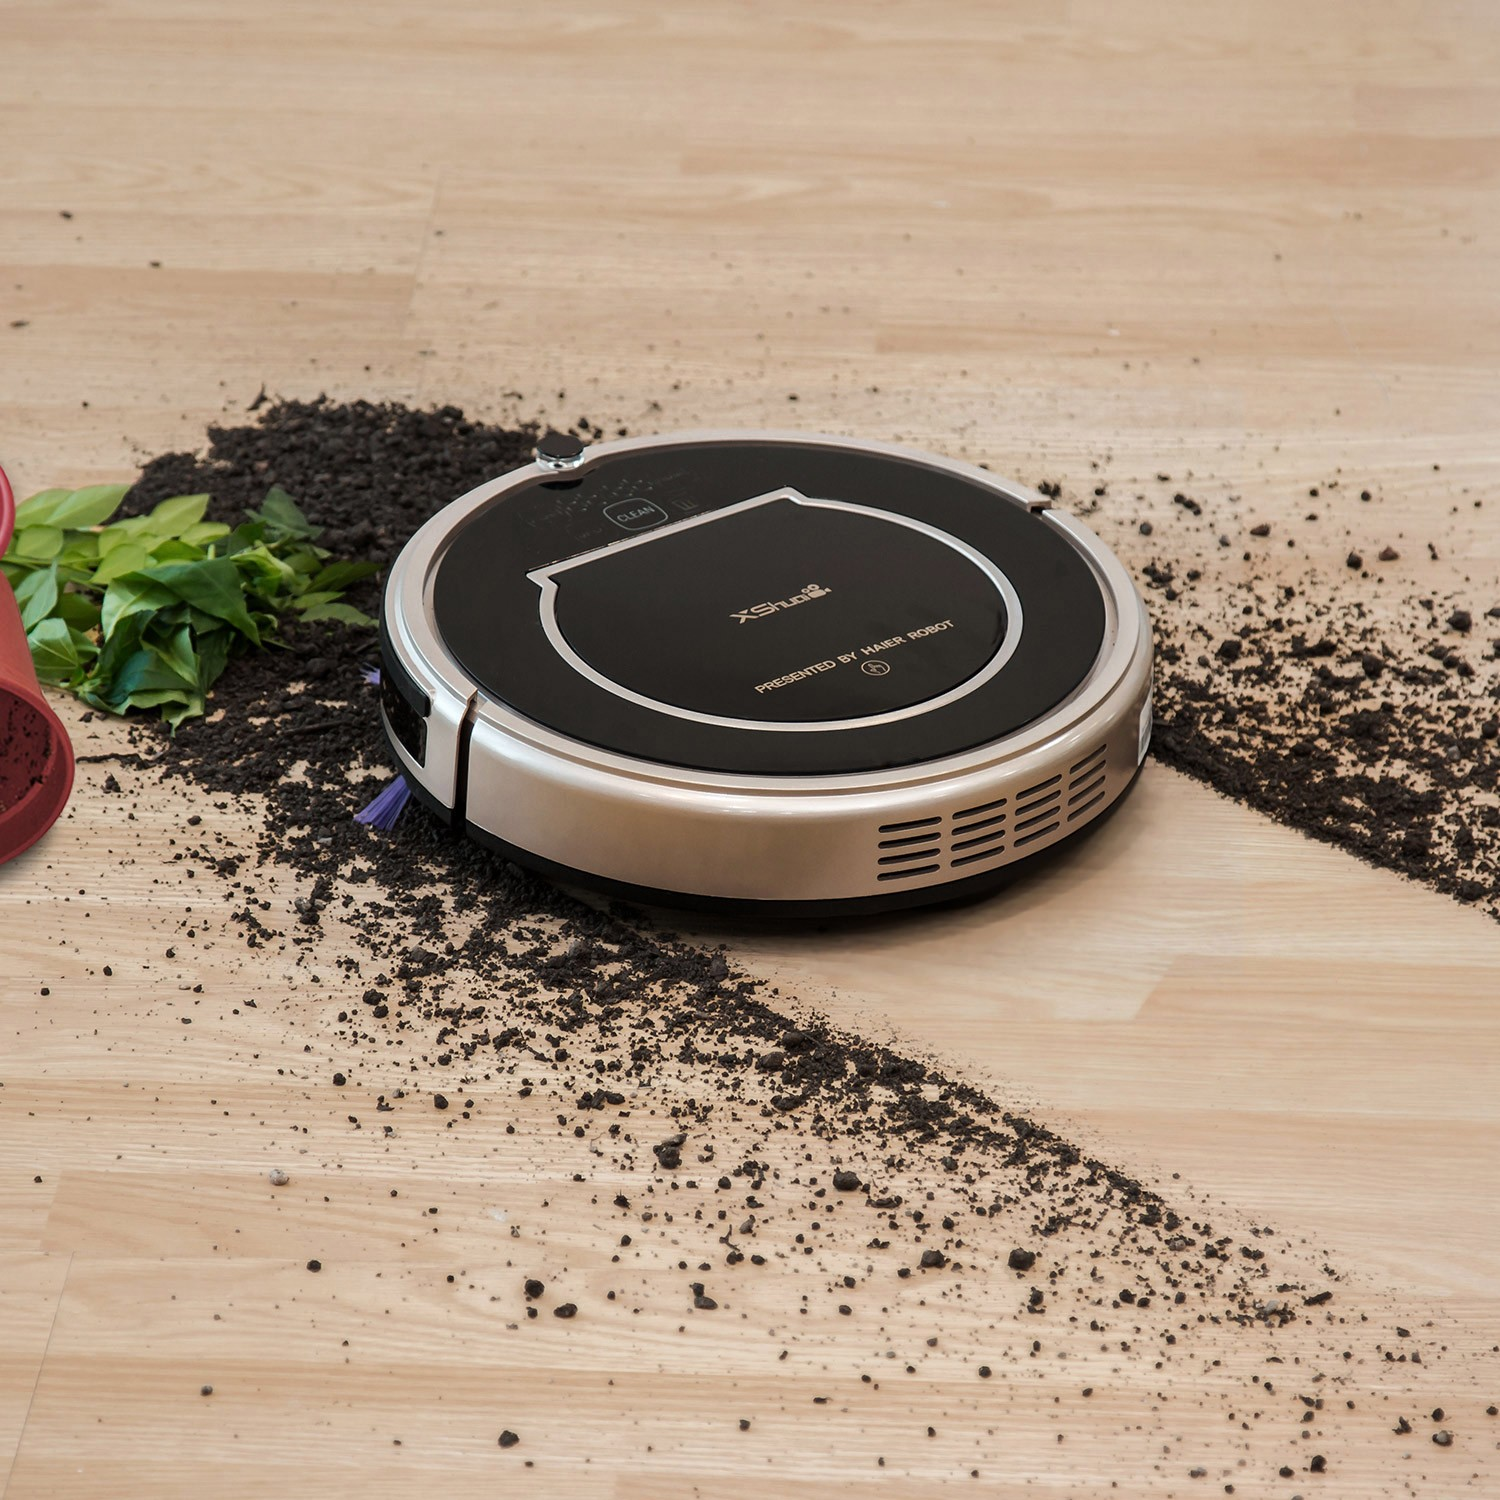 XShuai T370 Robot Vacuum Cleaner with Alexa Voice Control Wi Fi Connected Self Charging Gyroscope Navigation 1500Pa Powerful Suction HEPA Filter Pet